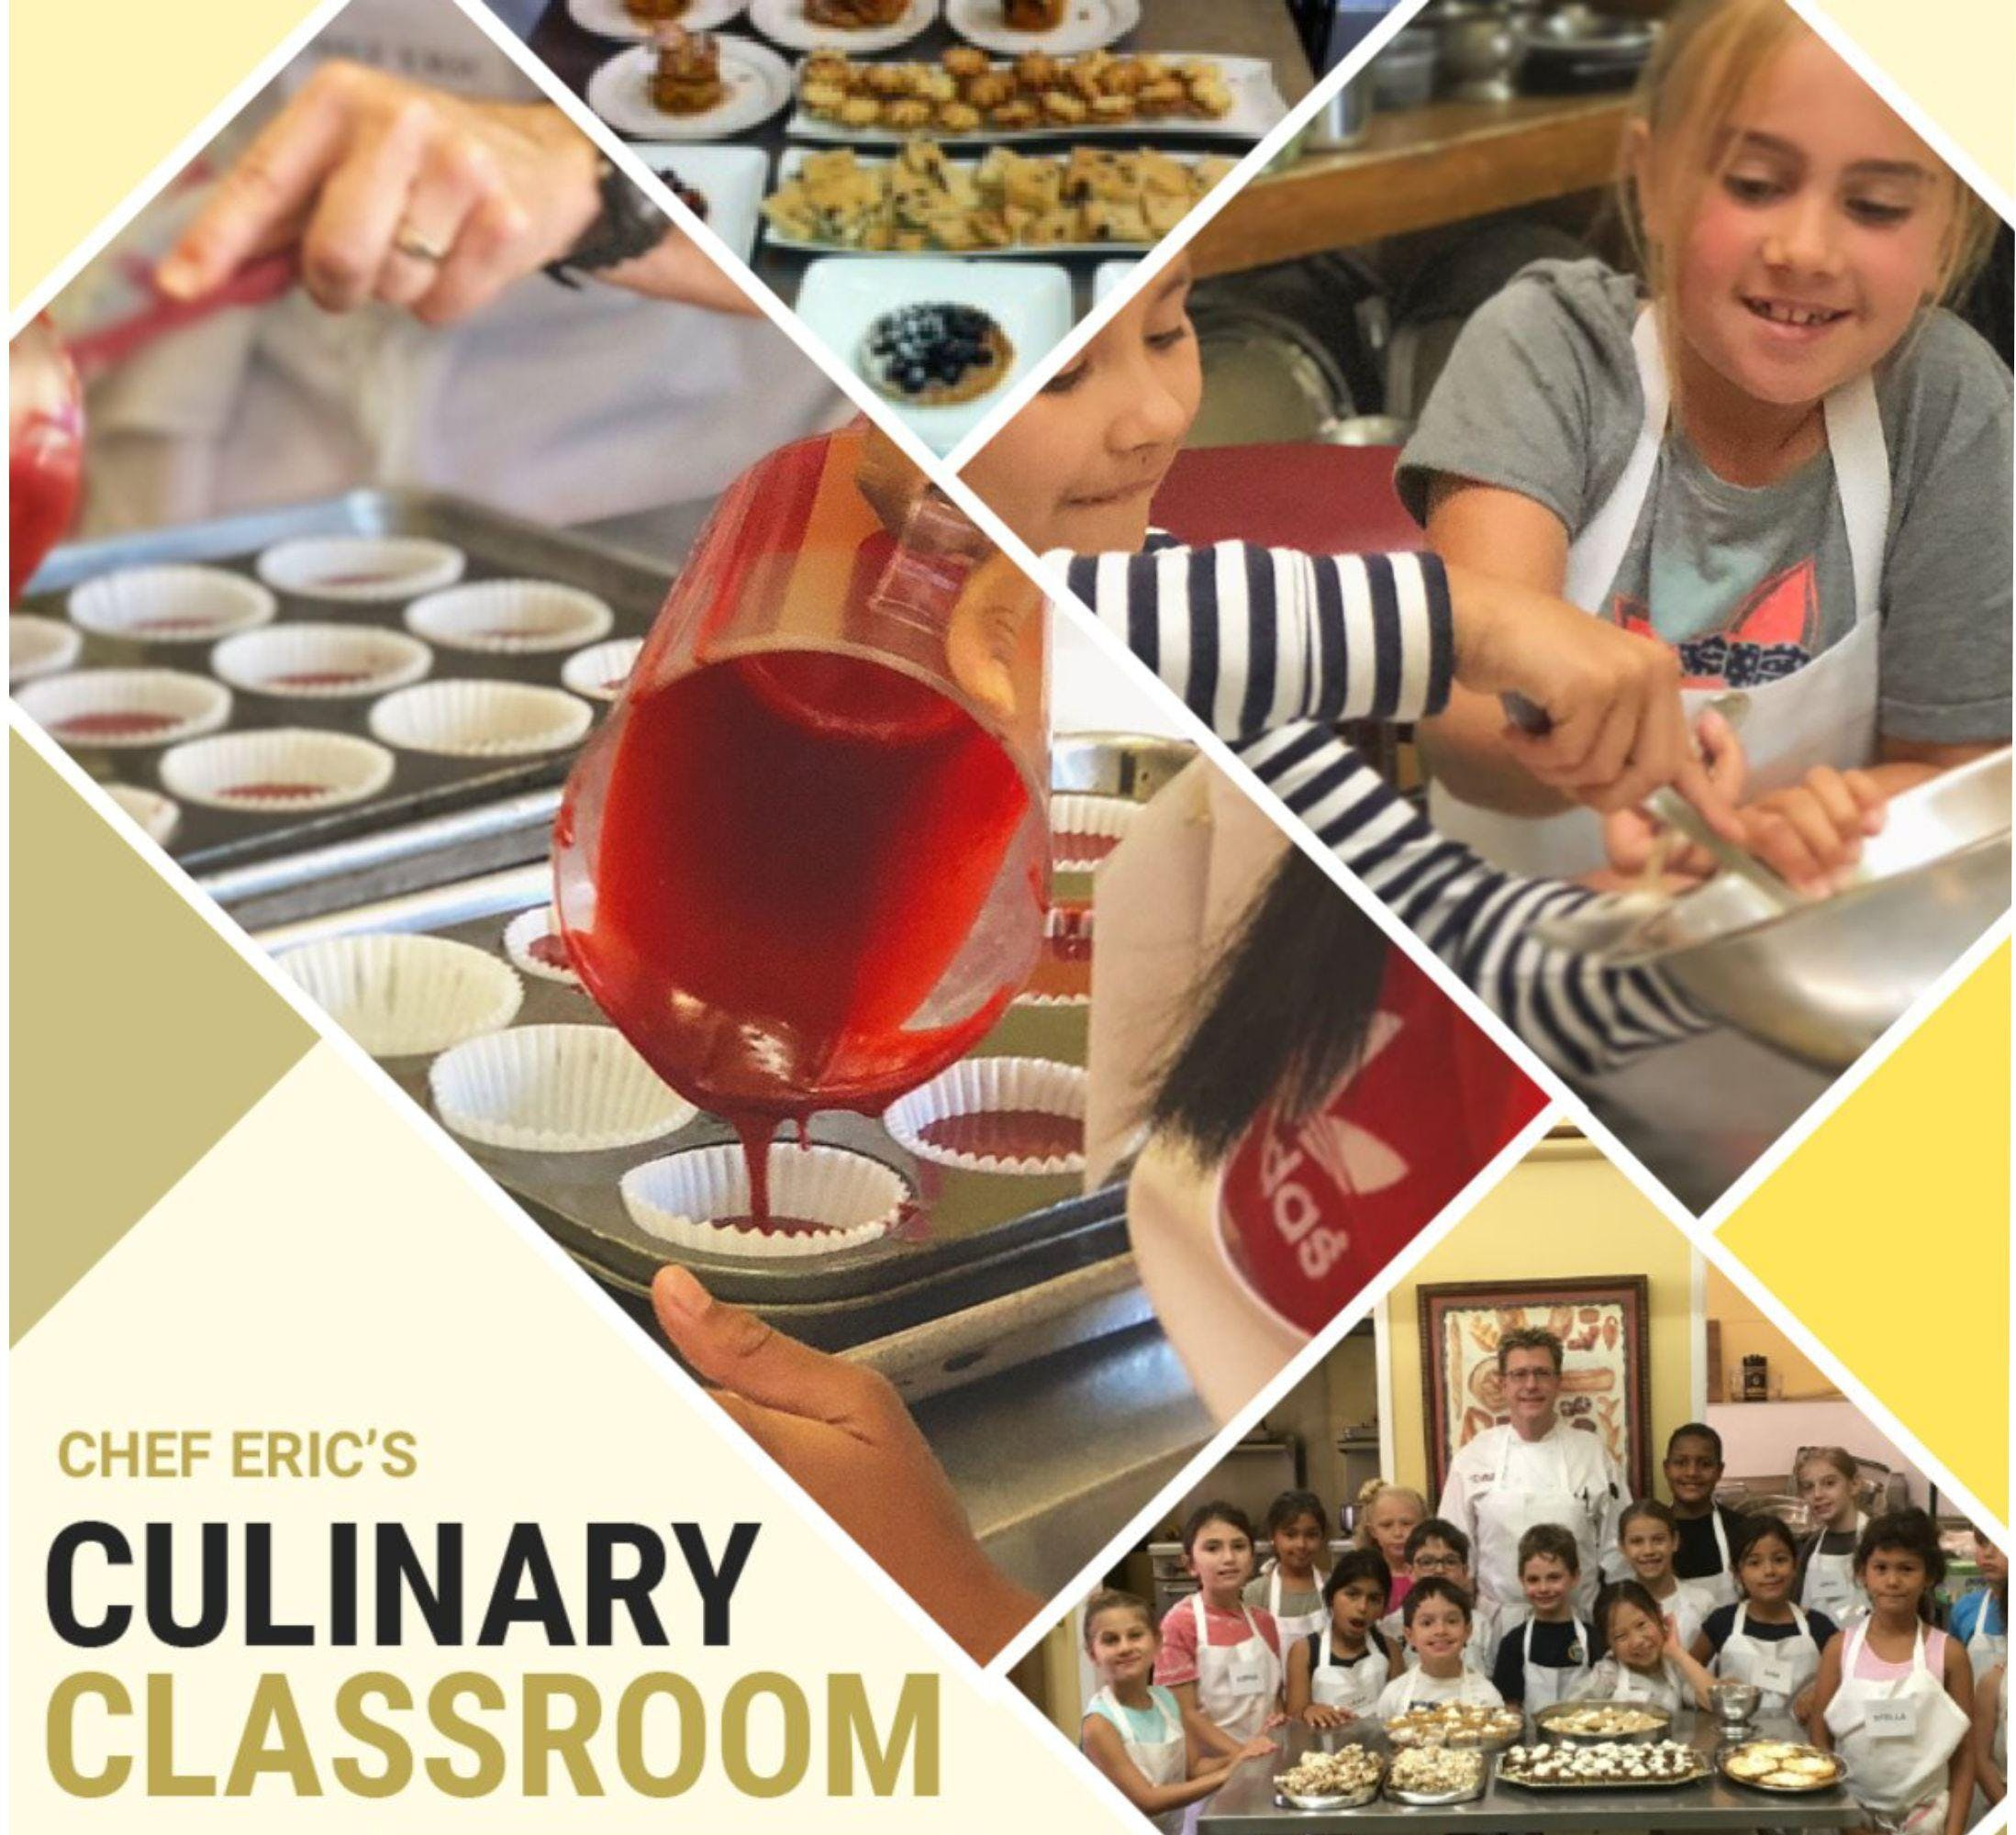 Kid's Summer Baking and Pastry Camp - $425 - July 22-25, 2019